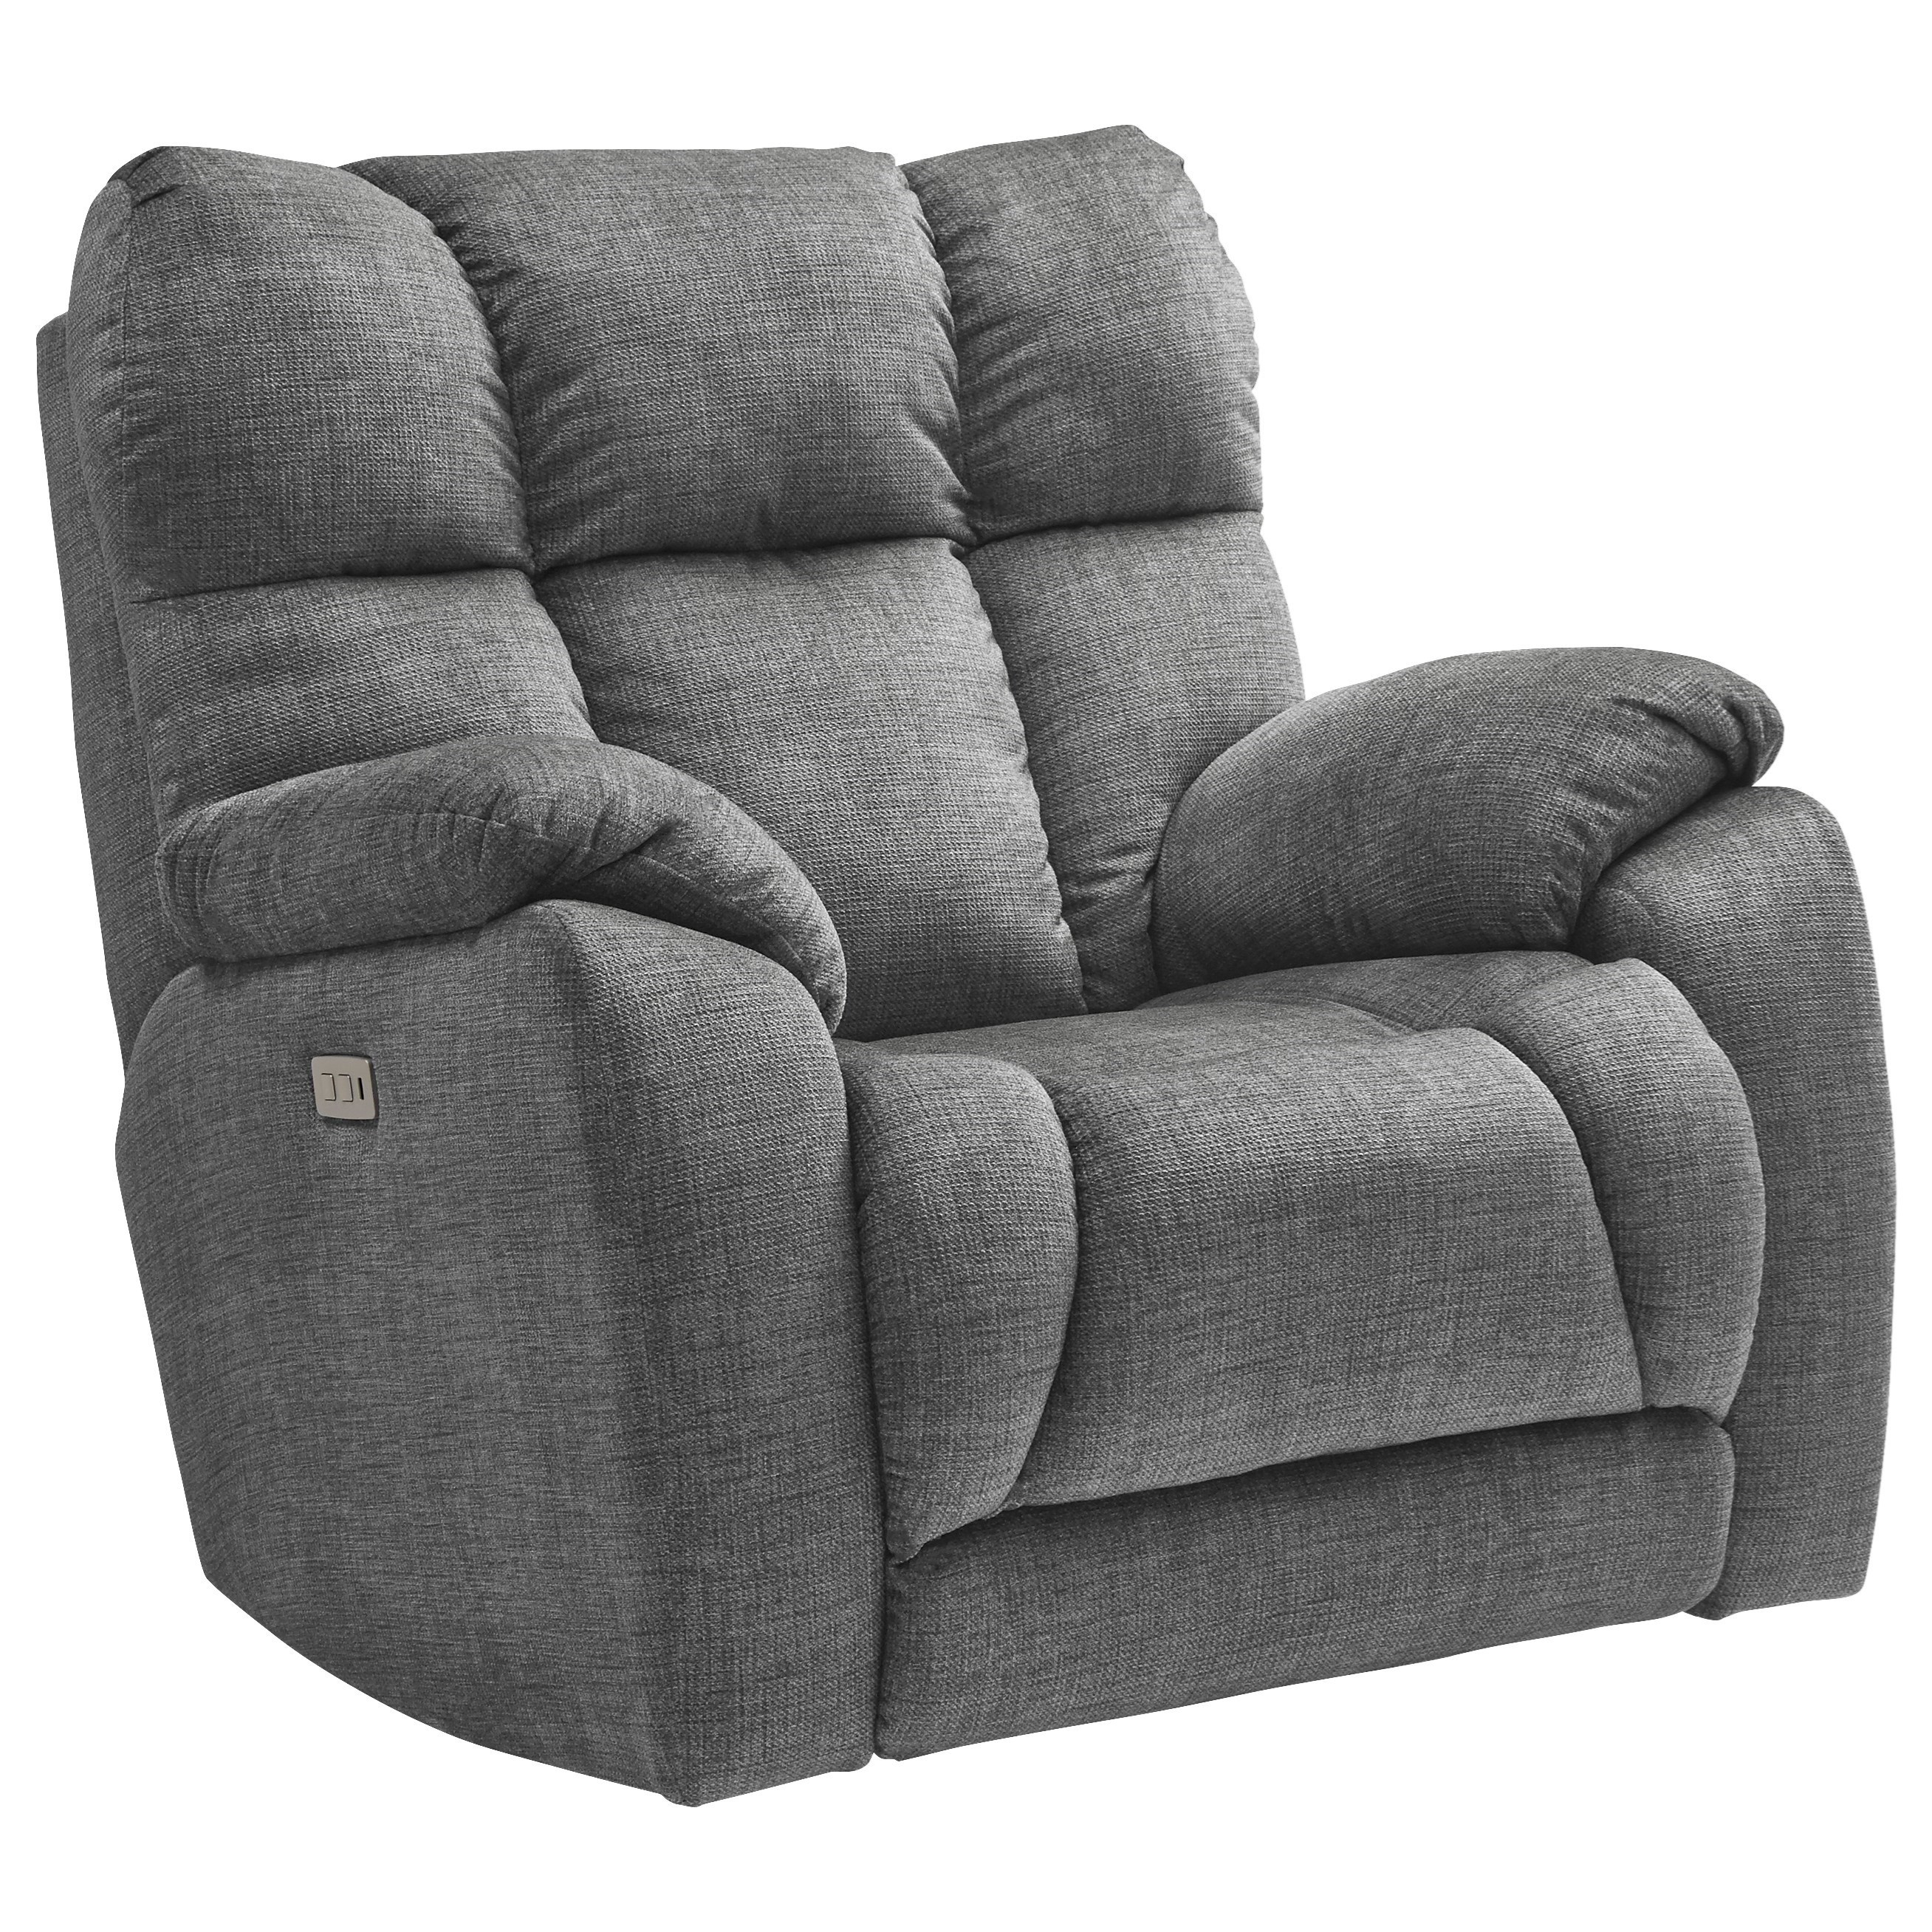 Wild Card Power Rocker Recliner by Southern Motion at Johnny Janosik